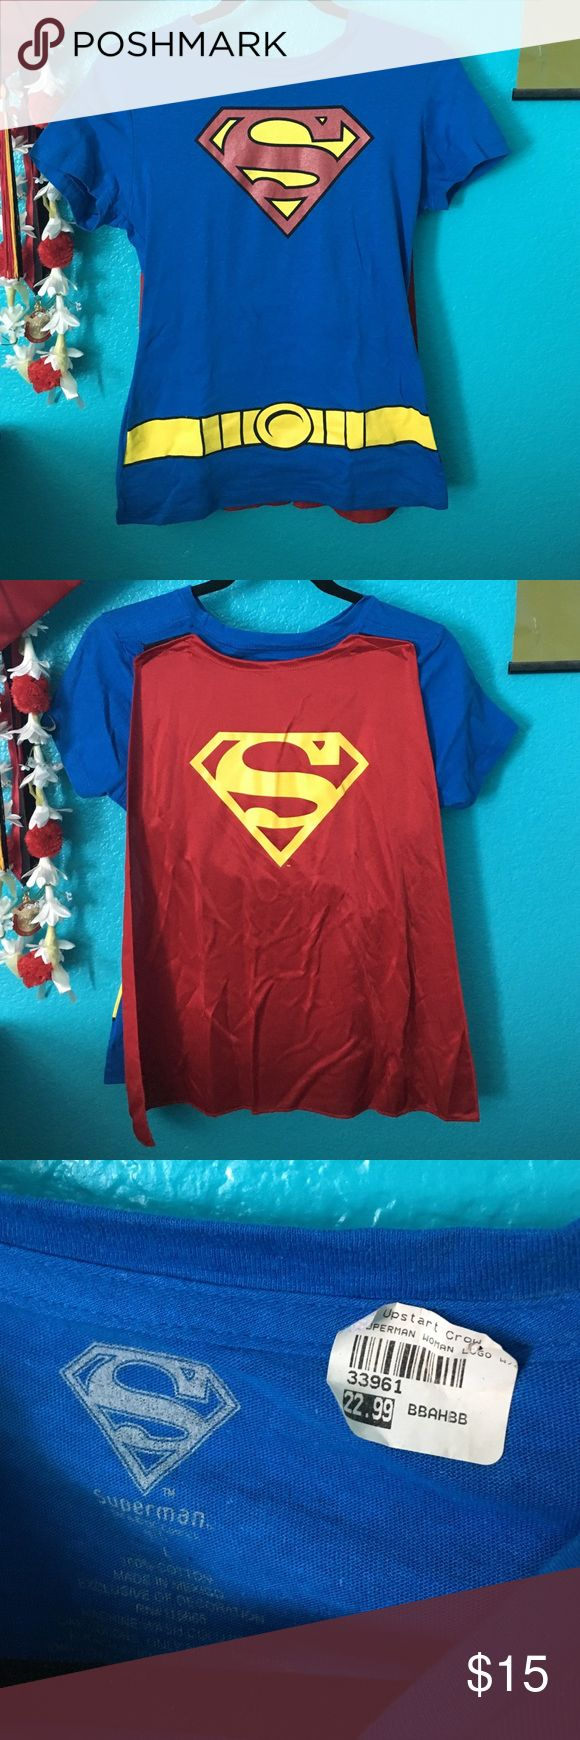 Superman shirt w/ cape Superman graphic shirt with cape attached. Never worn. Tops